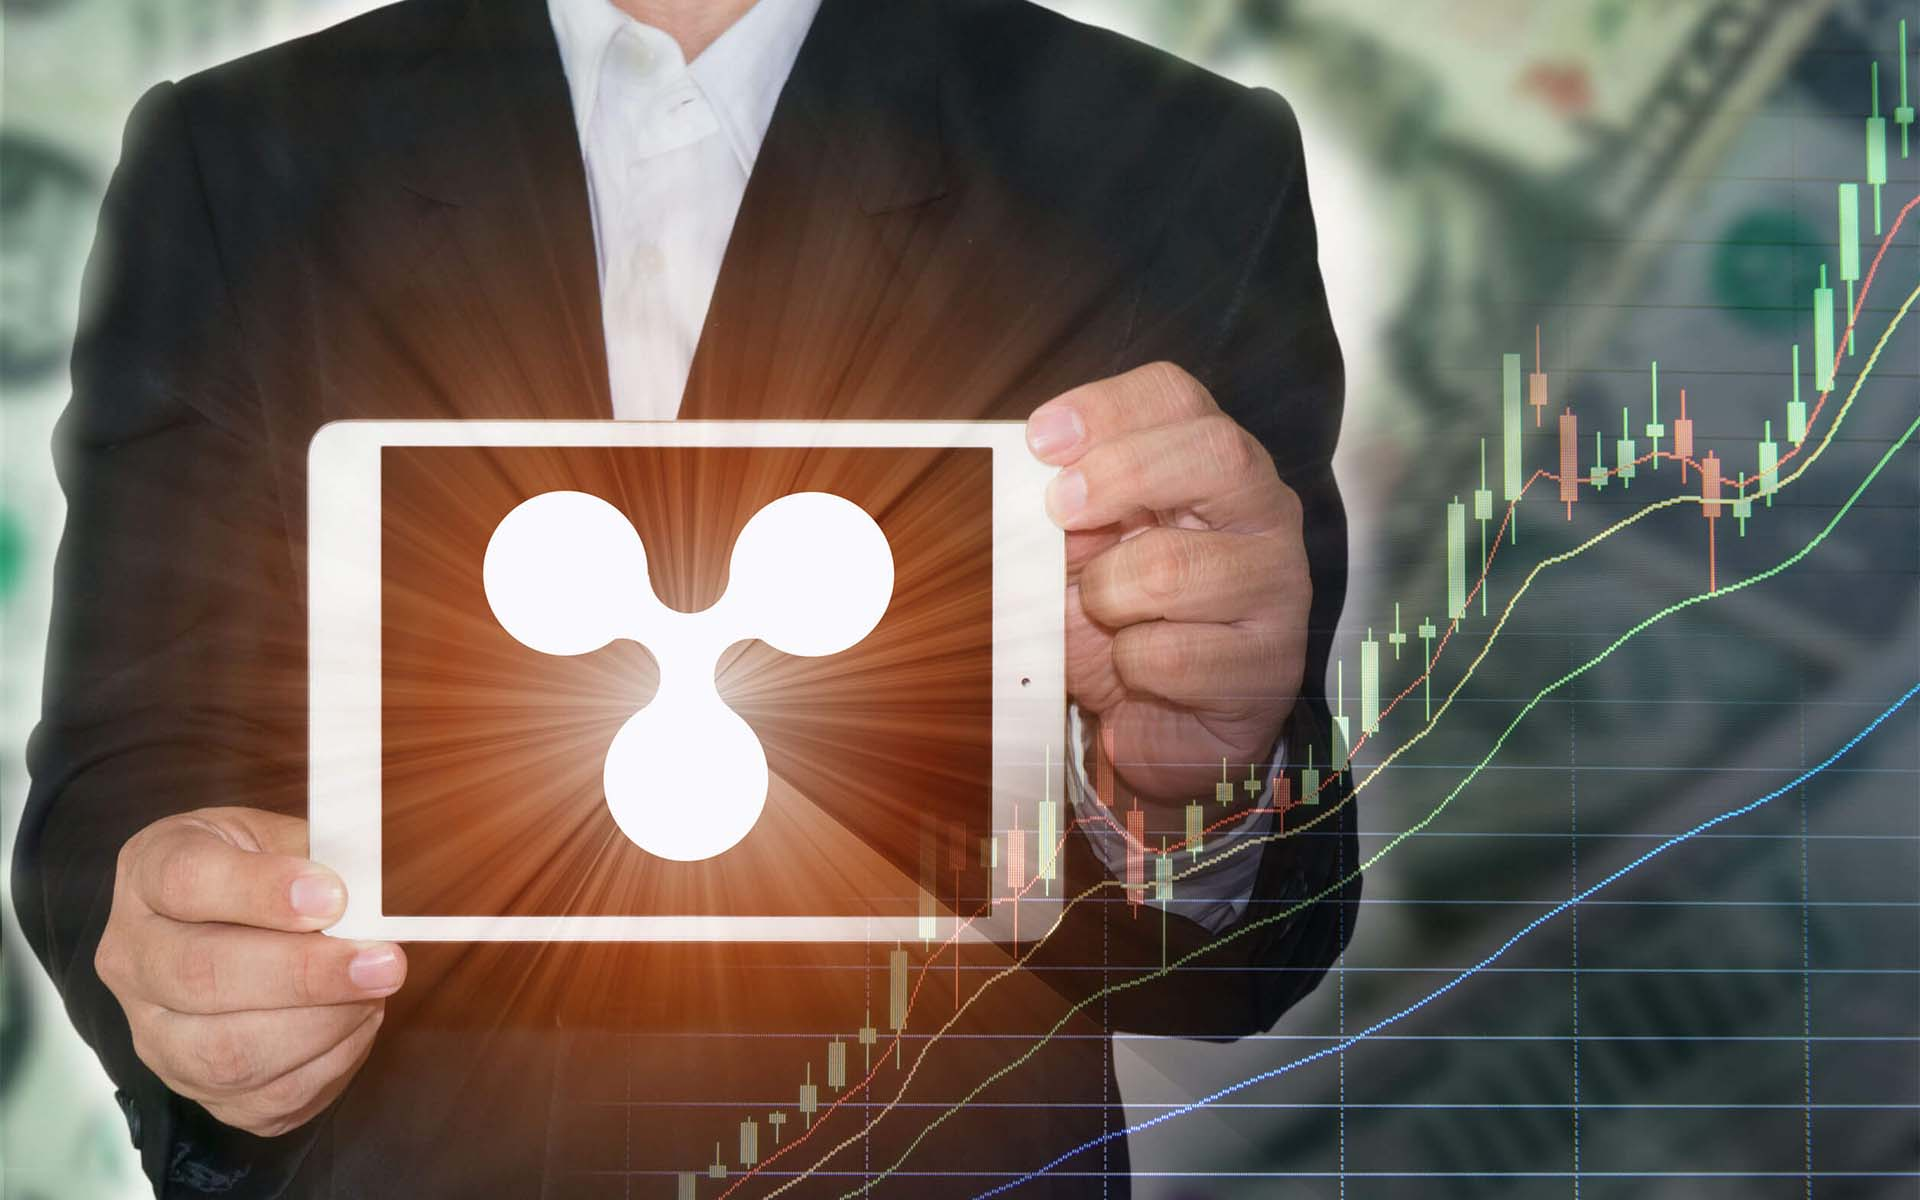 Uphold Adds Ripple (XRP) Buy / Sell Options to Its Digital Money Platform